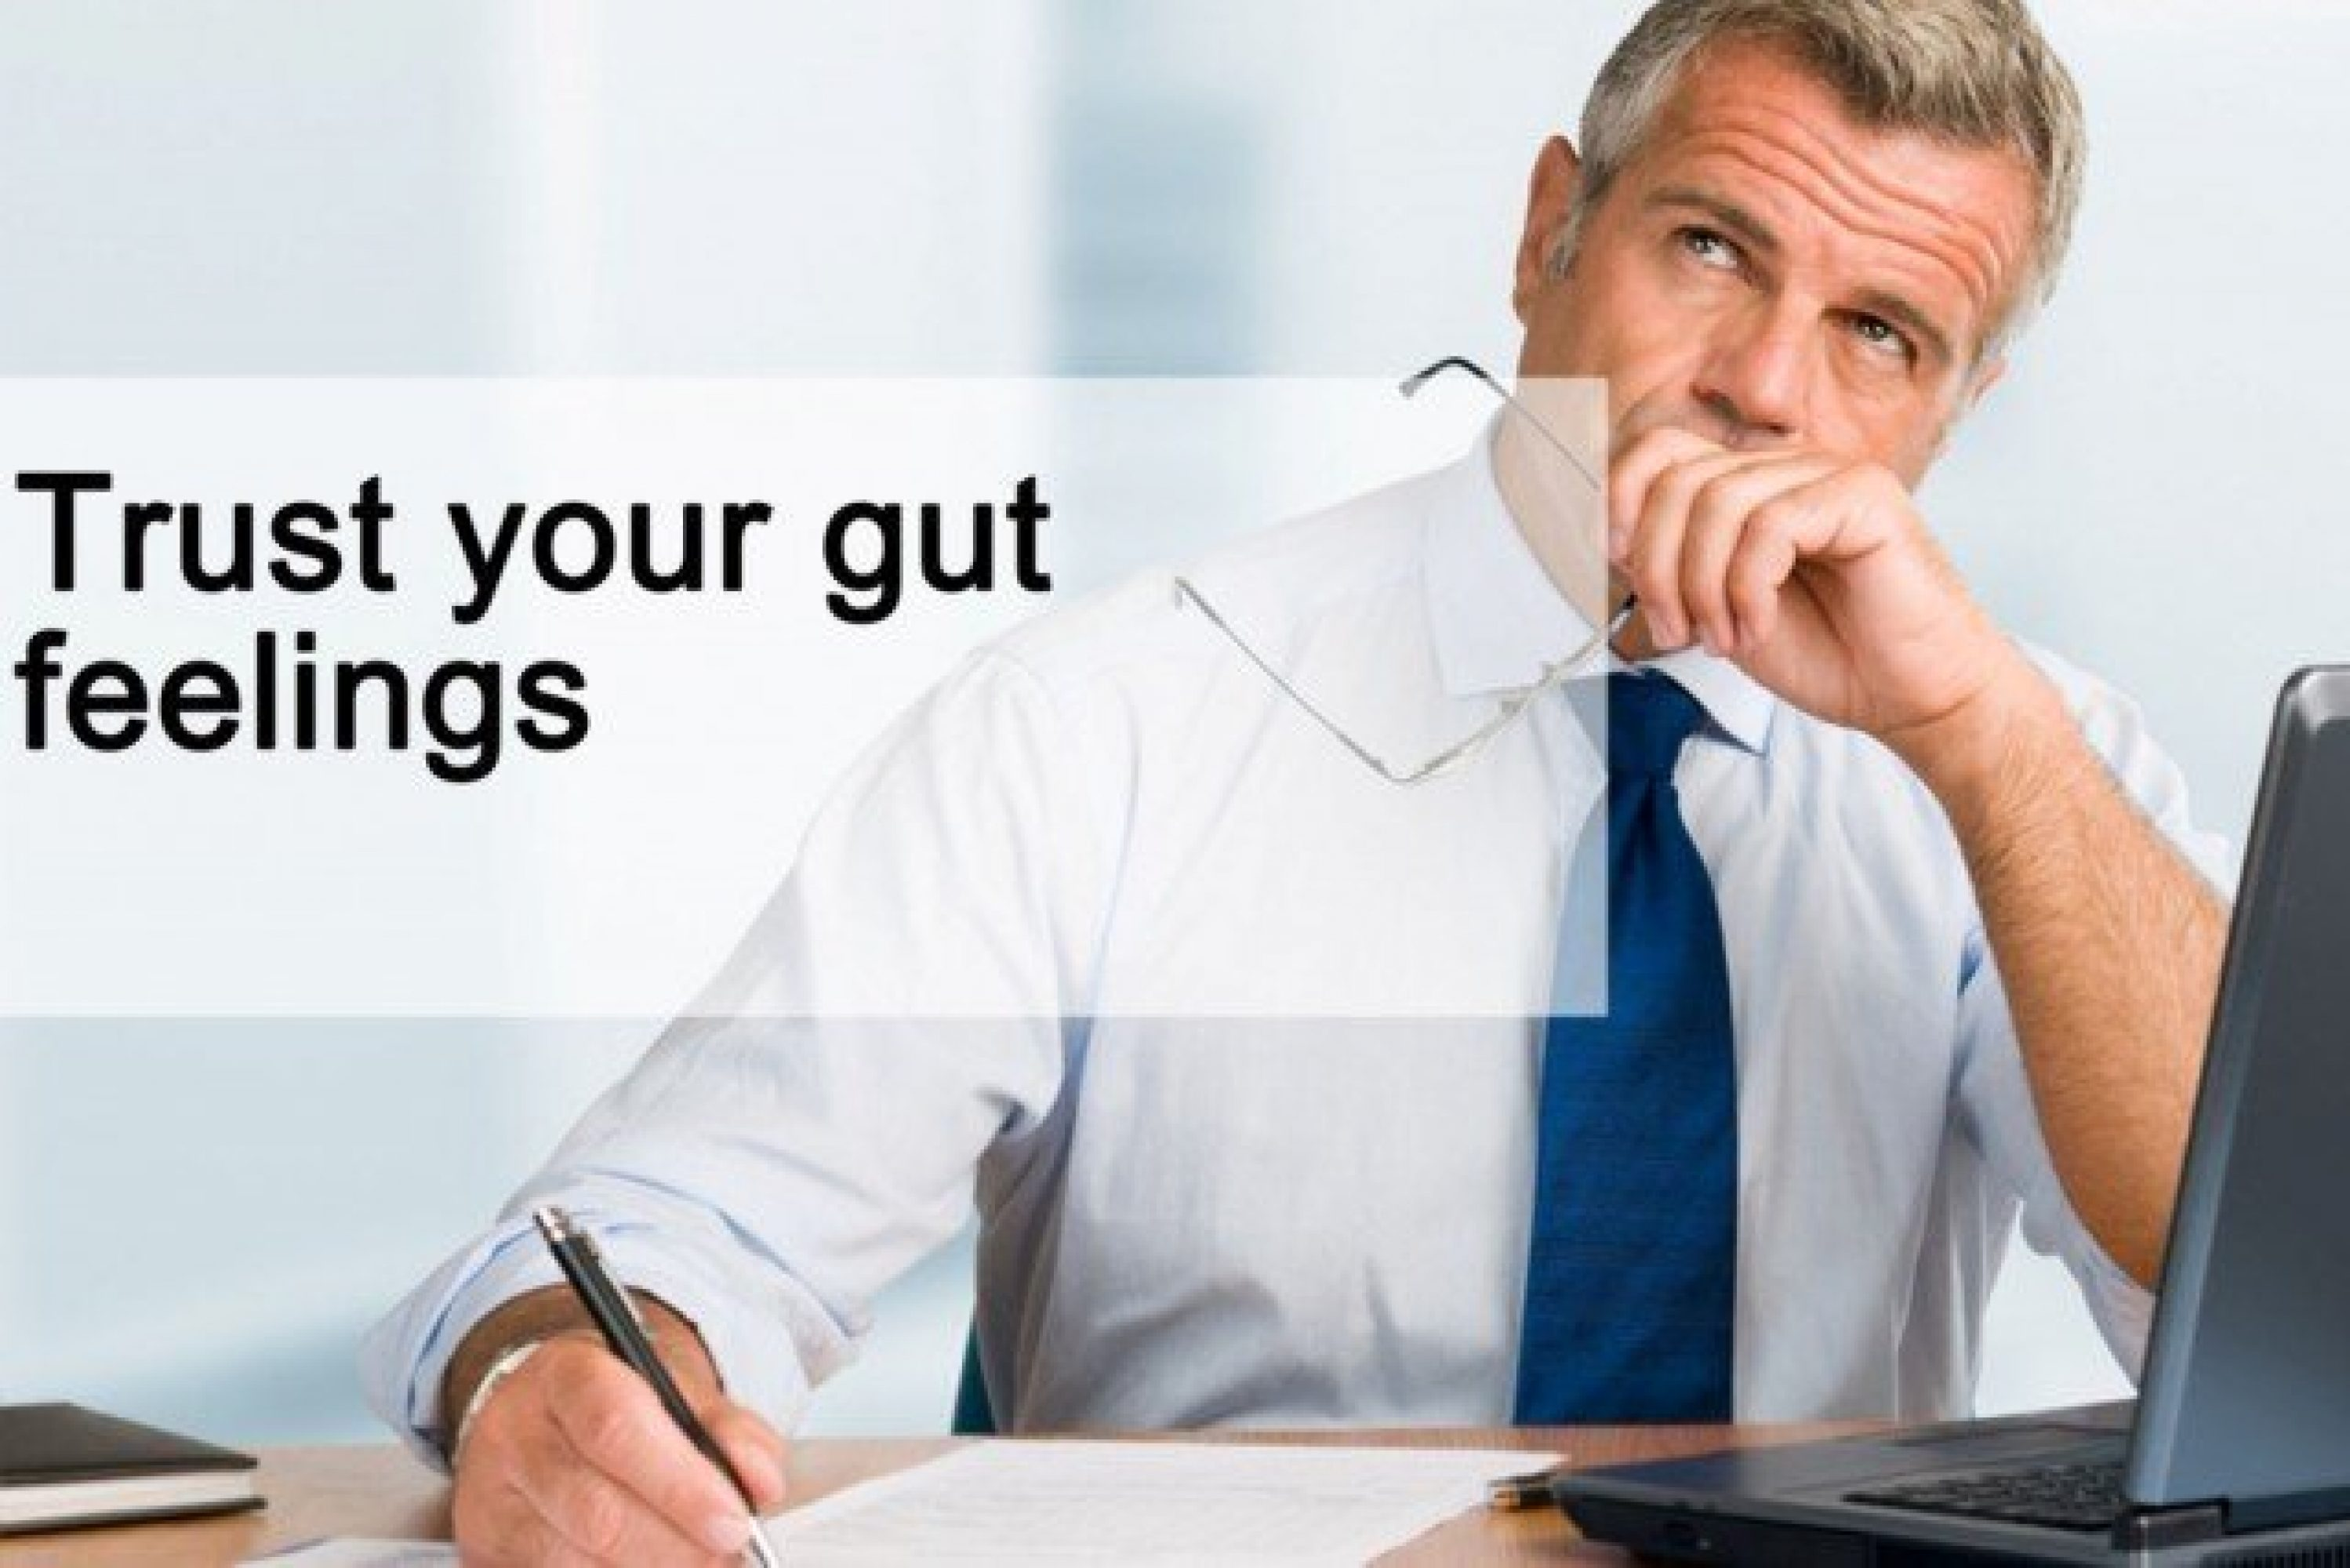 Trust your gut feelings in your job search